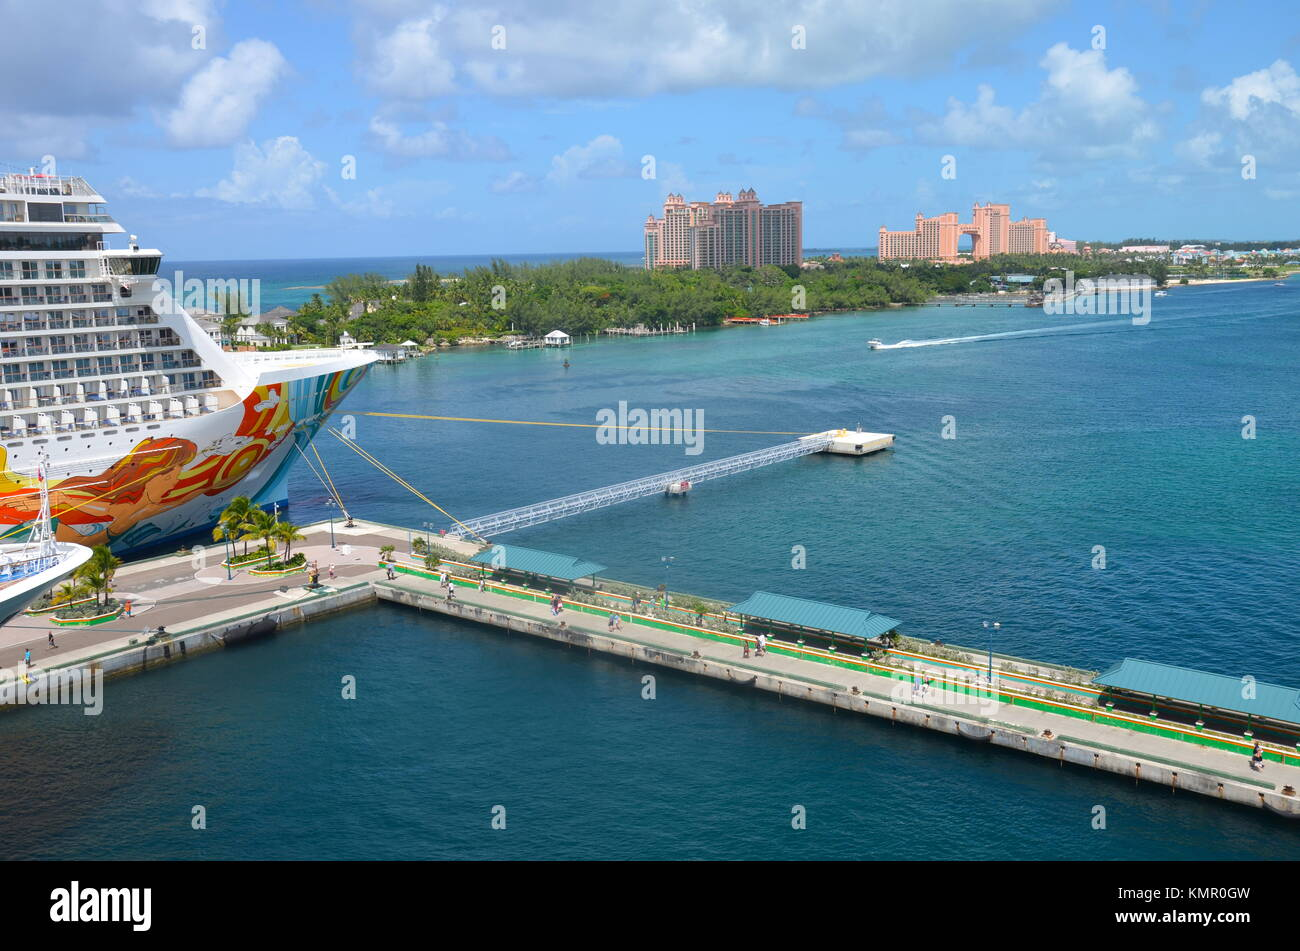 Port of nassau stock photos port of nassau stock images alamy - Cruise port nassau bahamas ...